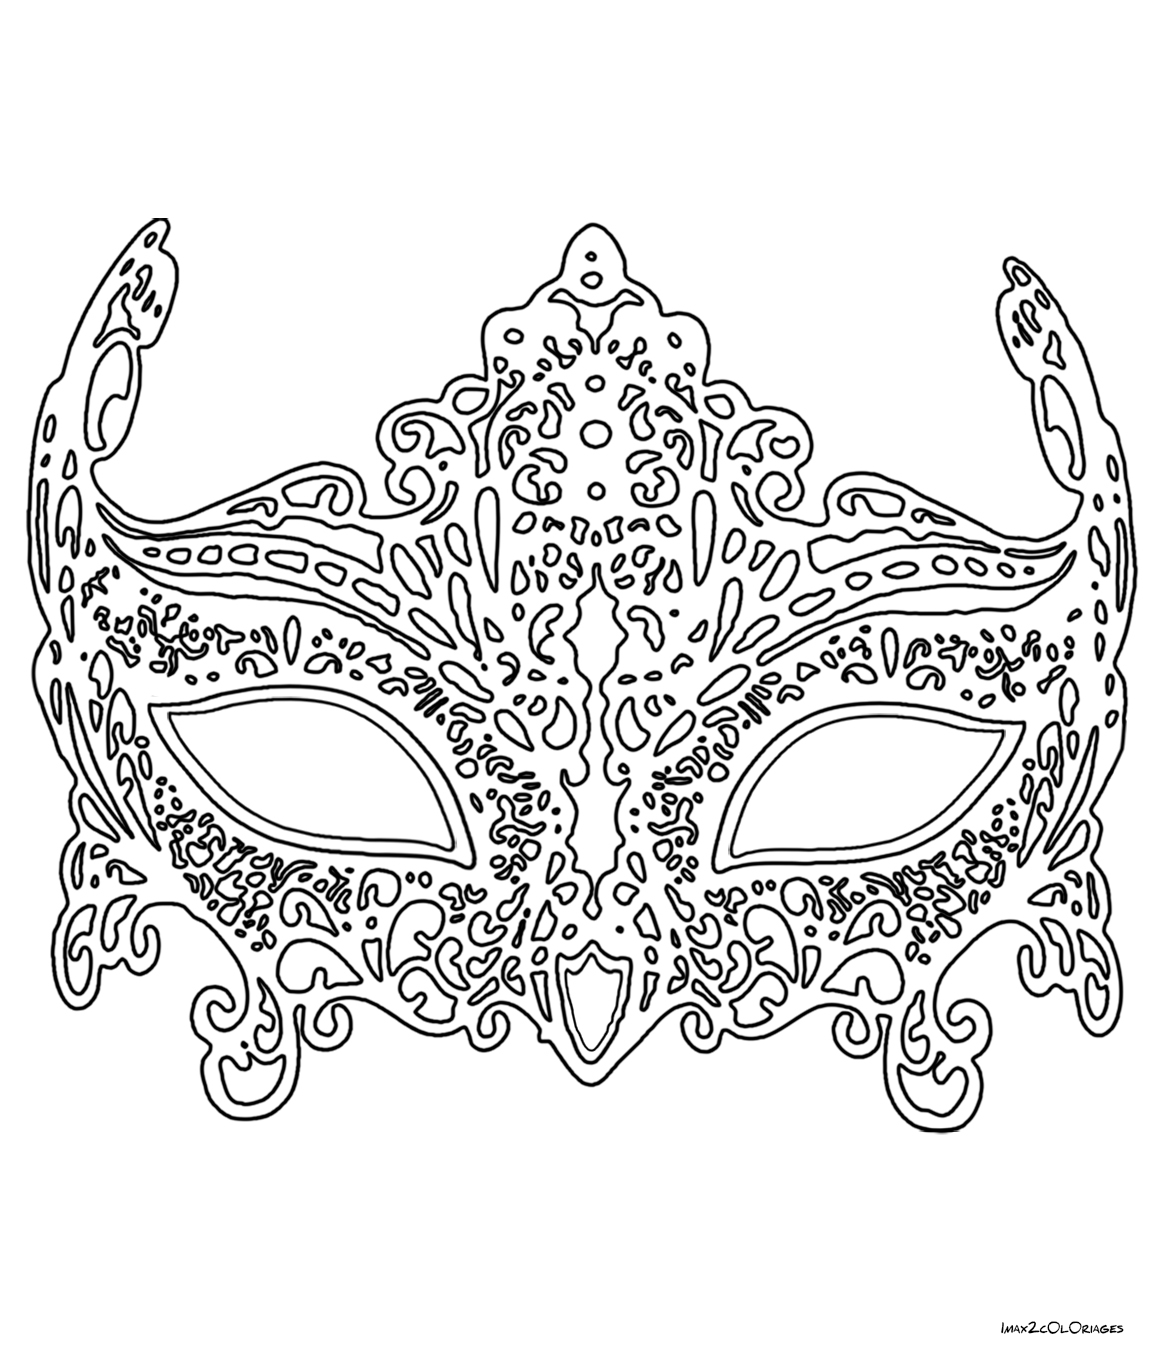 Coloriage anti stress masque - Anti coloriage ...